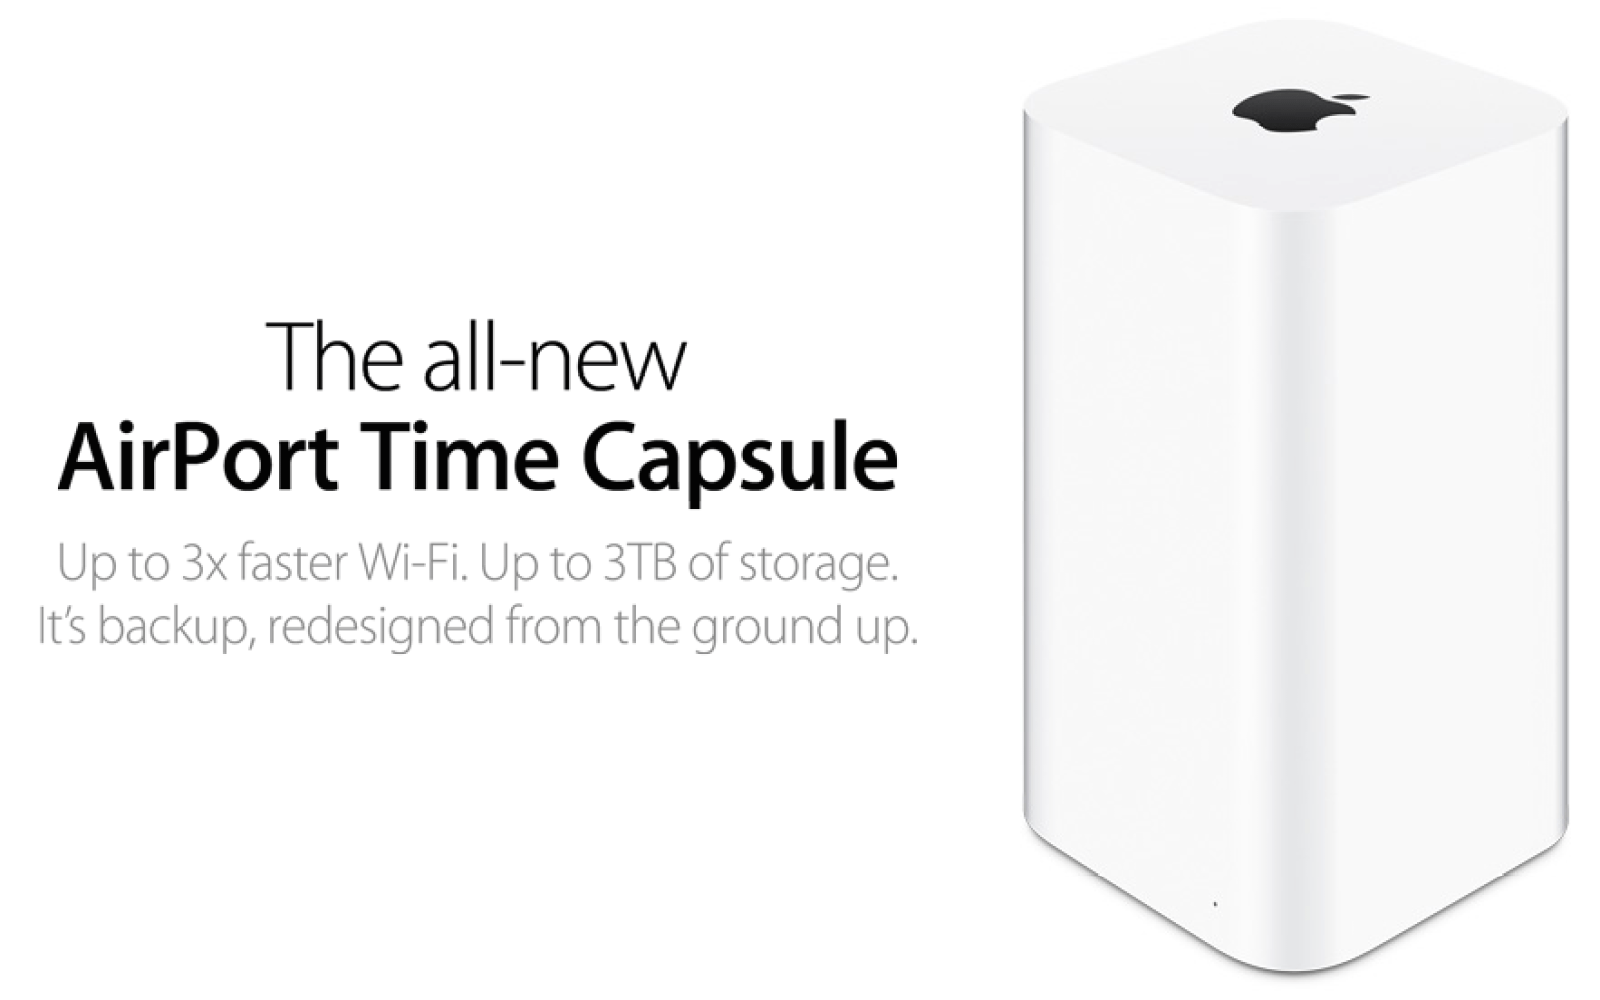 Apple 3TB AirPort Time Capsule (newest version) w/ 802 11ac